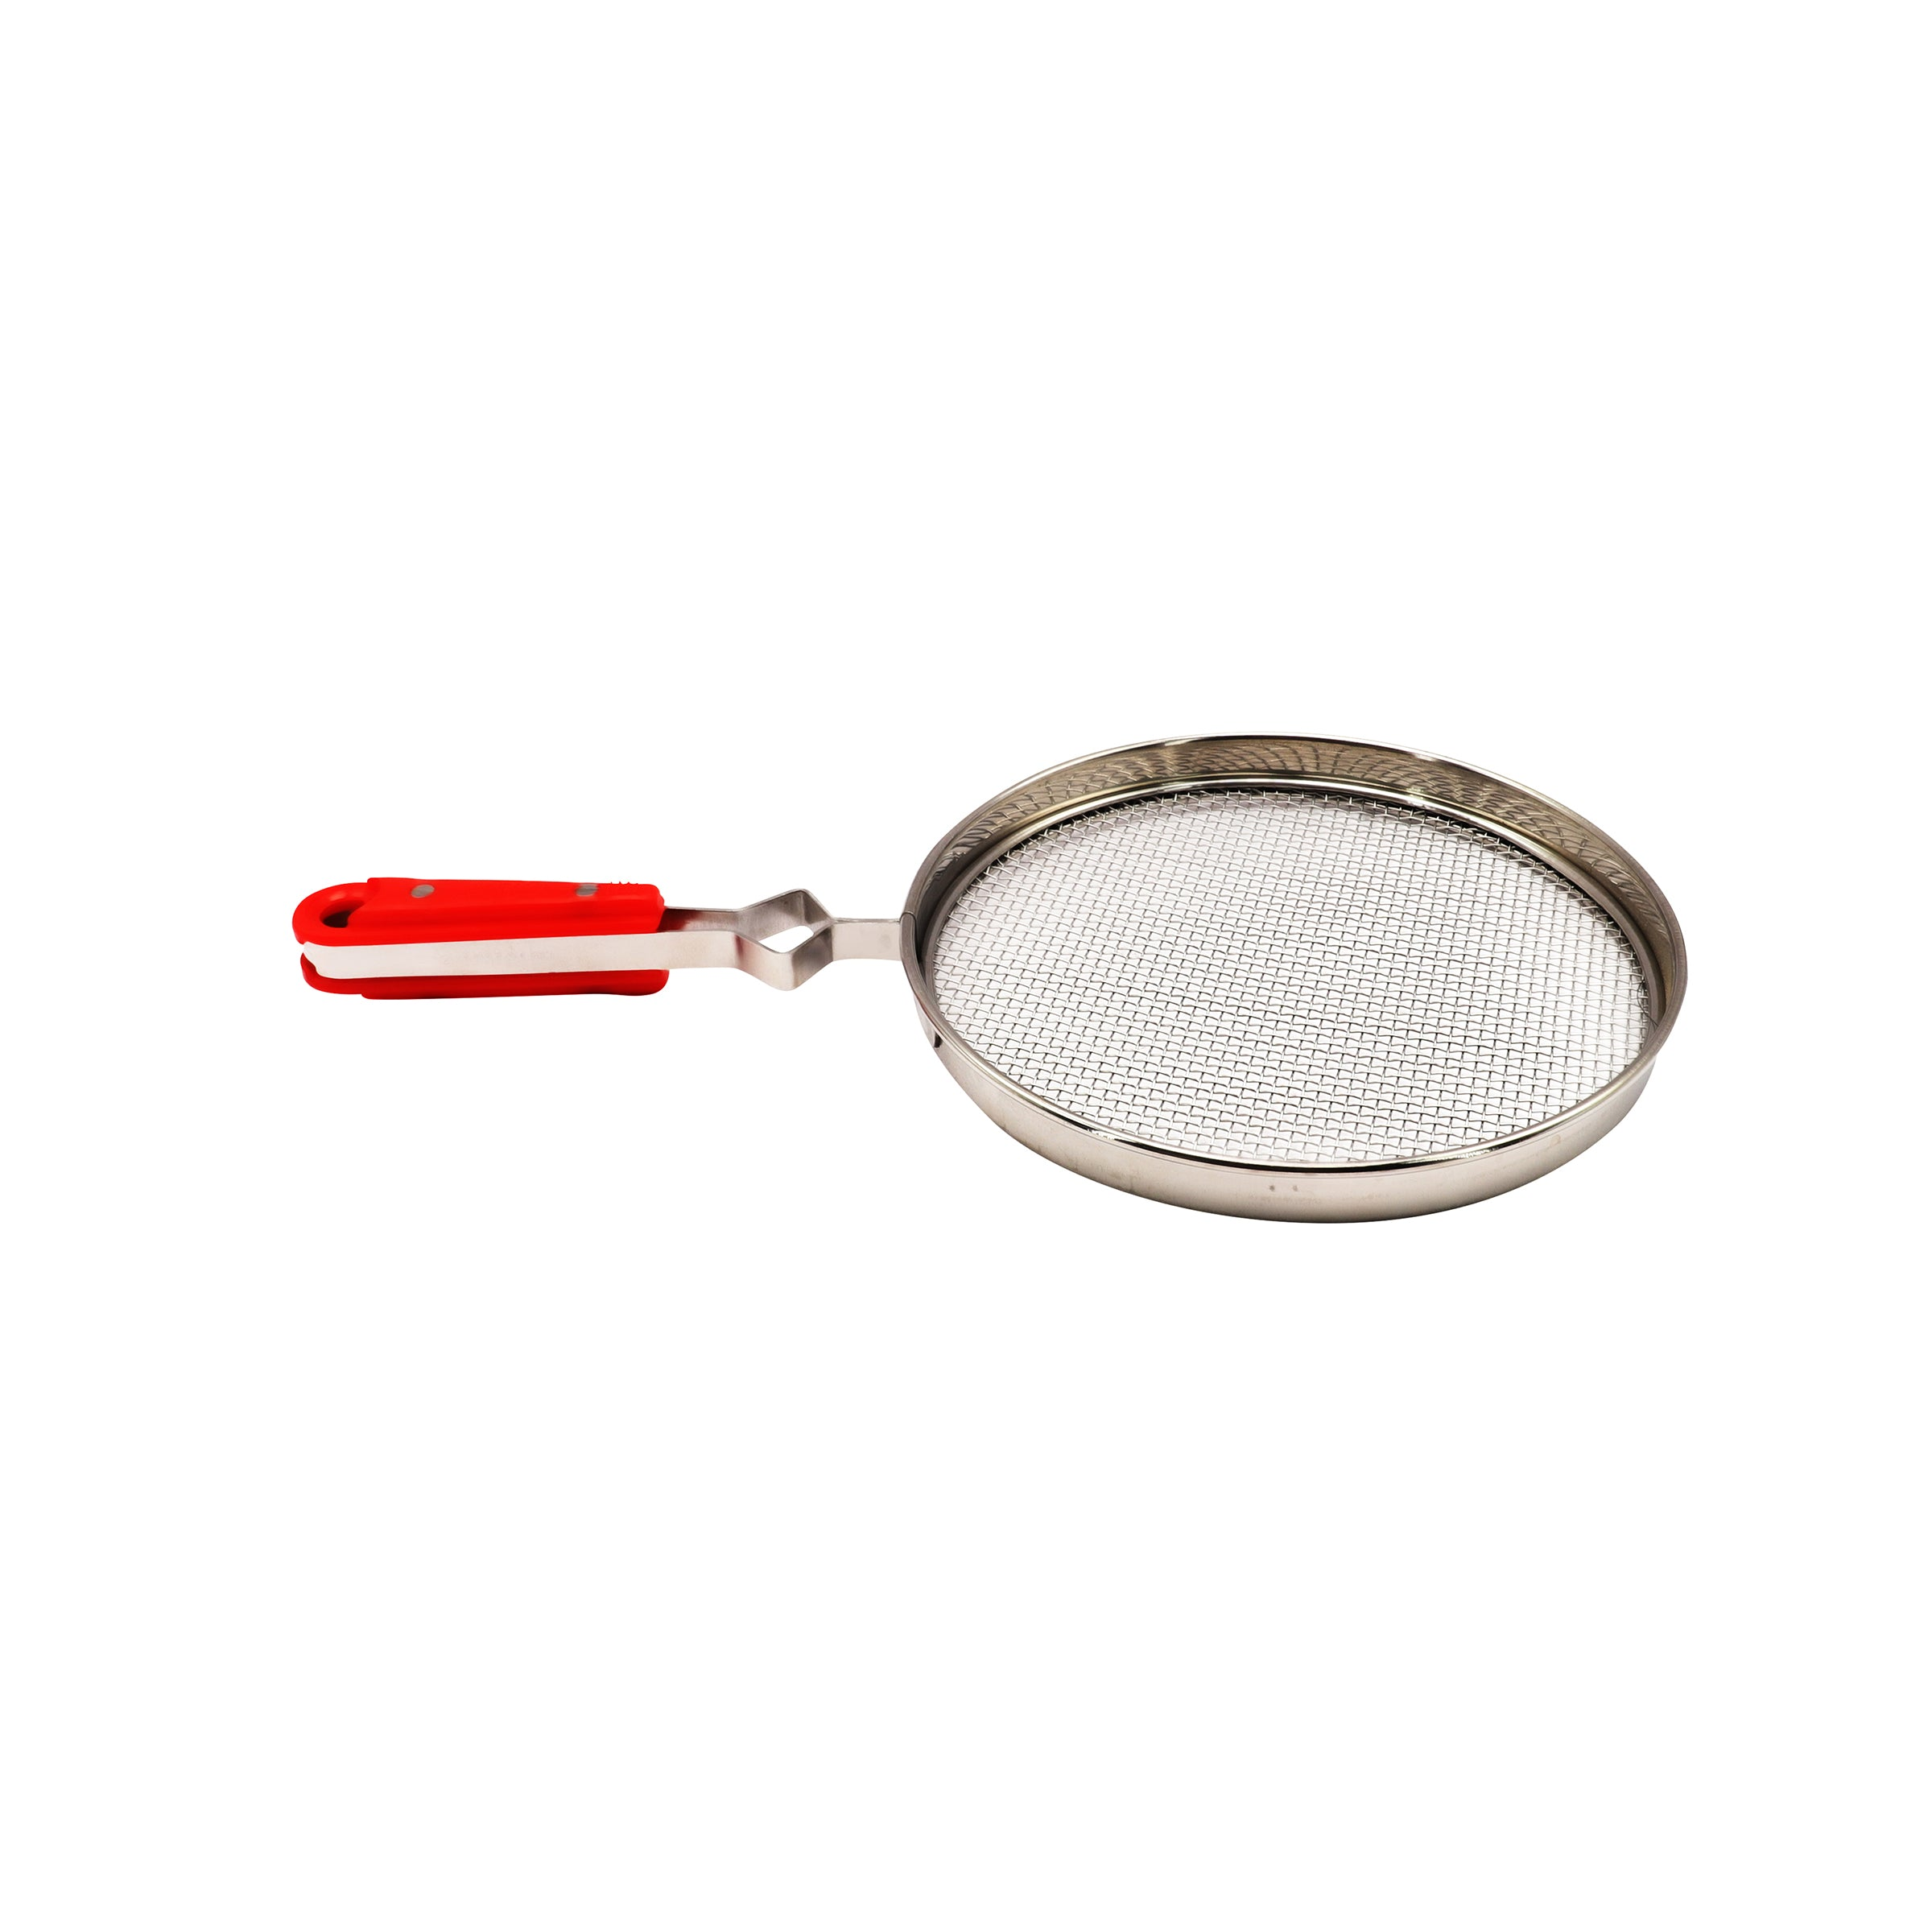 Papad Chapati Roaster Grill, No.7